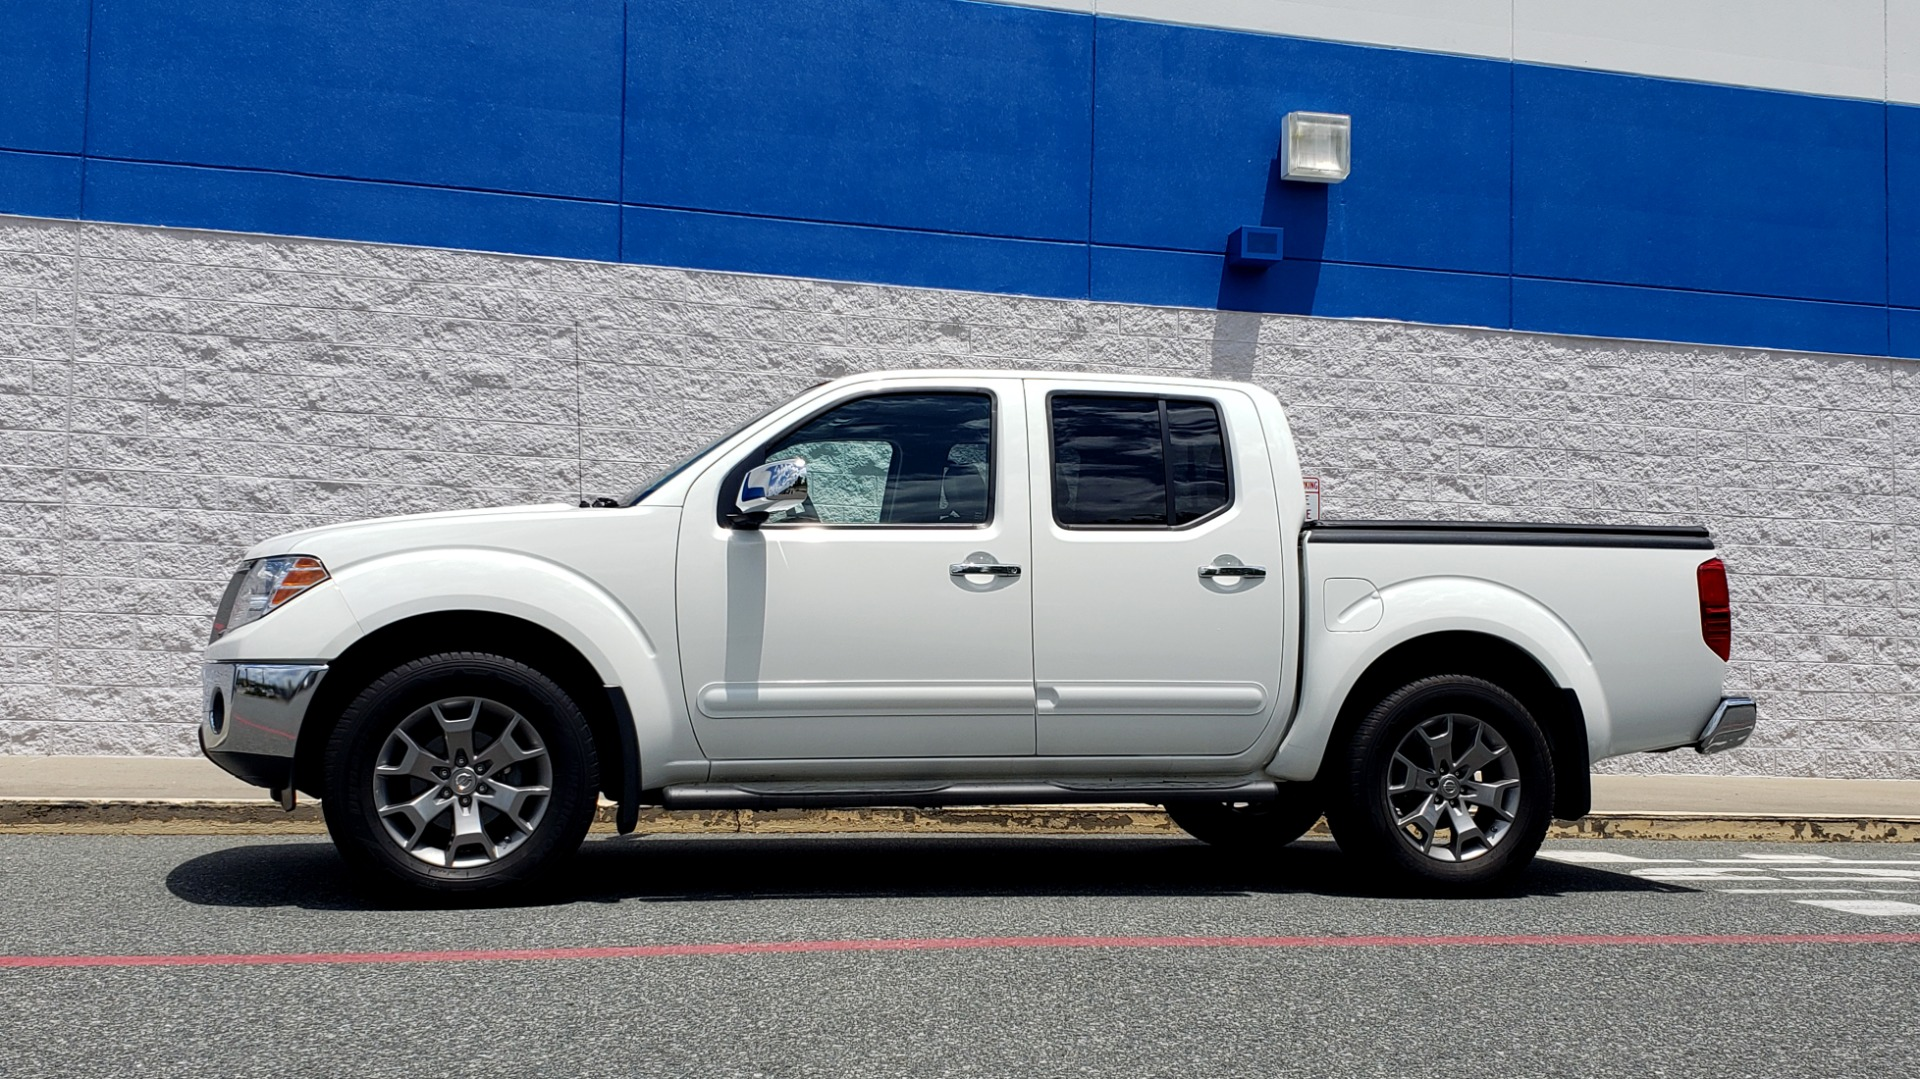 Used 2019 Nissan FRONTIER SL CREW CAB / 4X4 / NAV / SUNROOF / ROCKFORD FOSGATE / LOADED for sale $31,495 at Formula Imports in Charlotte NC 28227 6